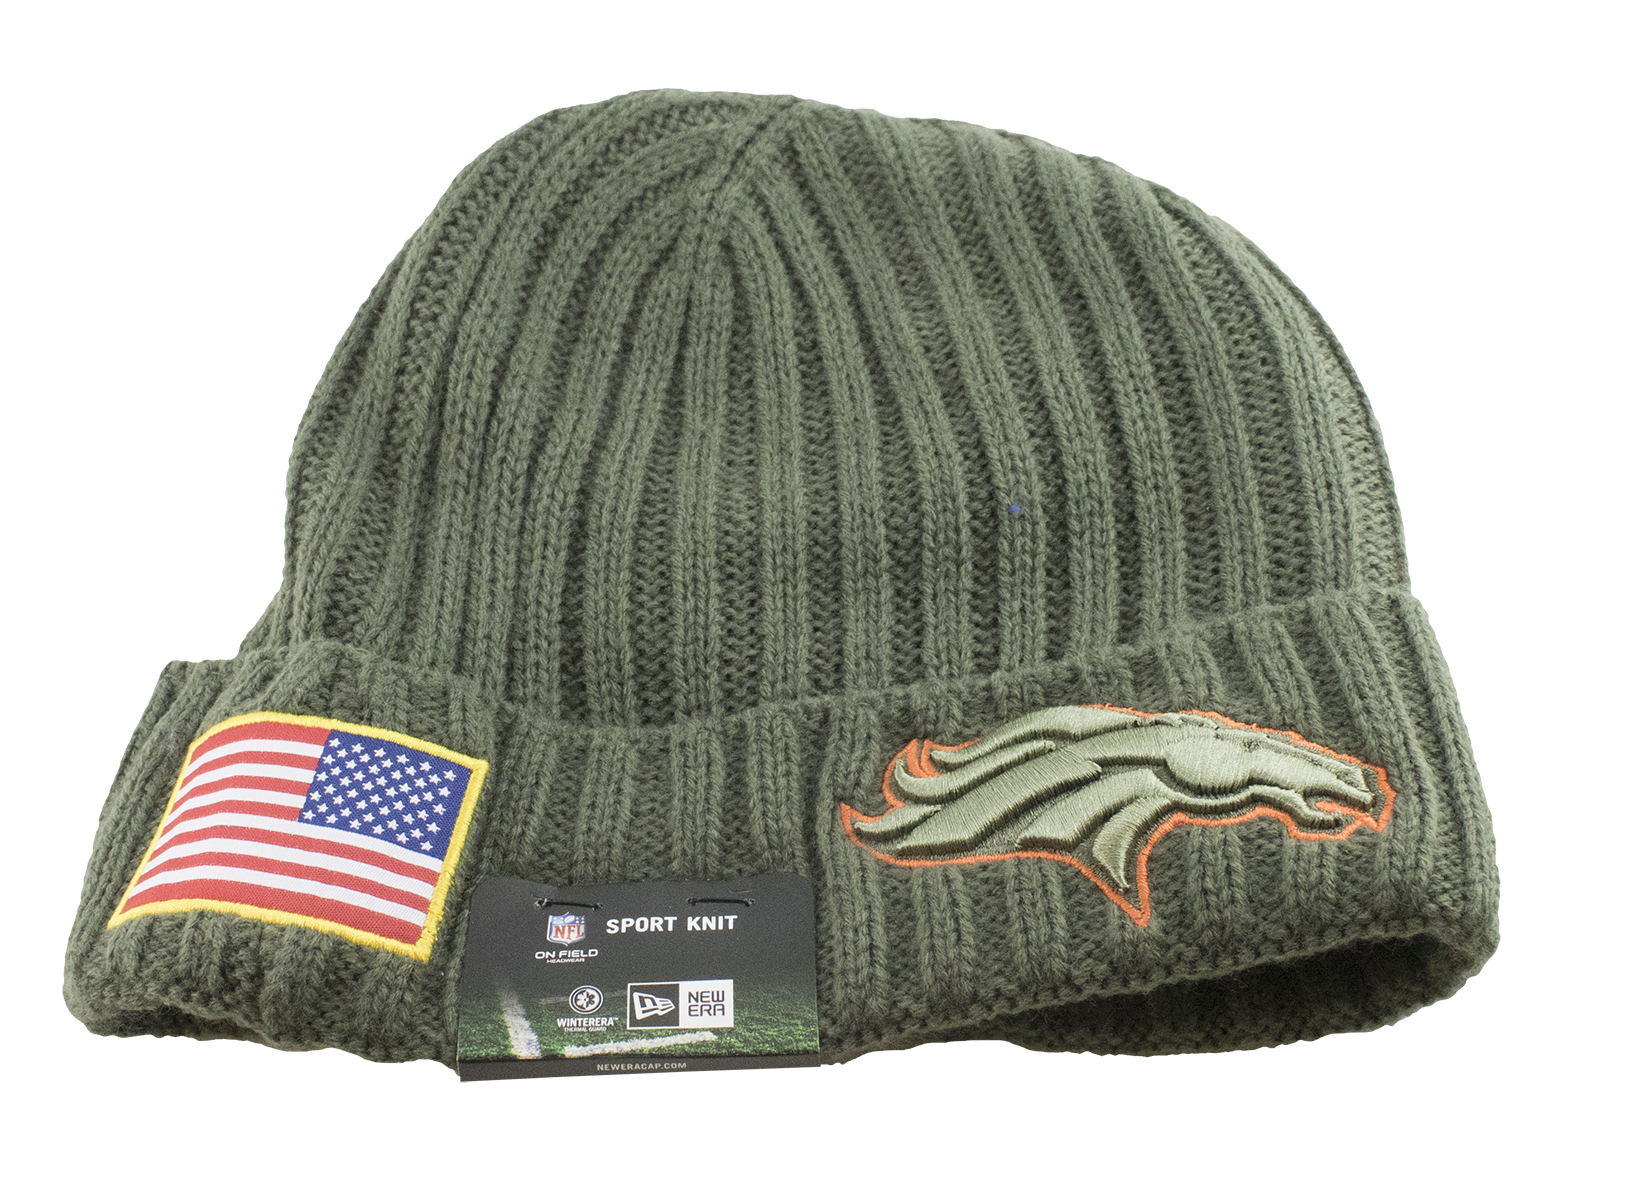 e65bac18b Details about Men s New Era Men s Broncos New Era 2017 Salute To Service  Cuffed Knit Hat Olive